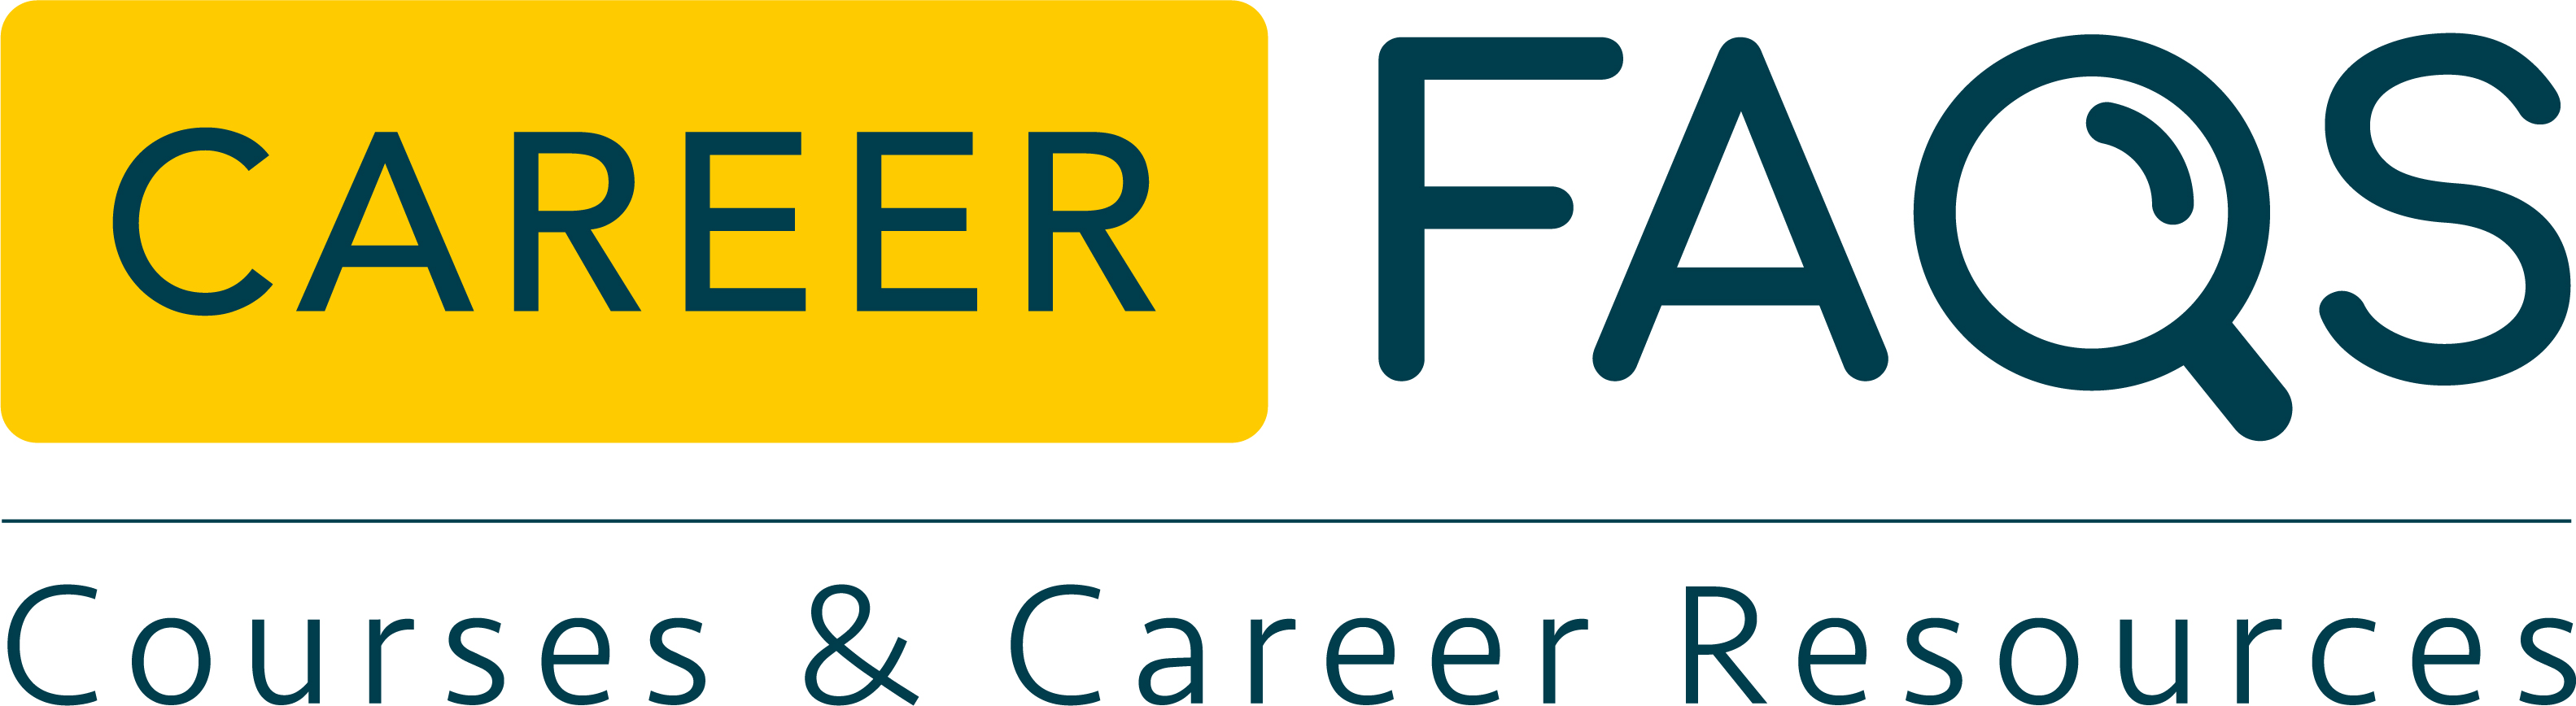 Career FAQS